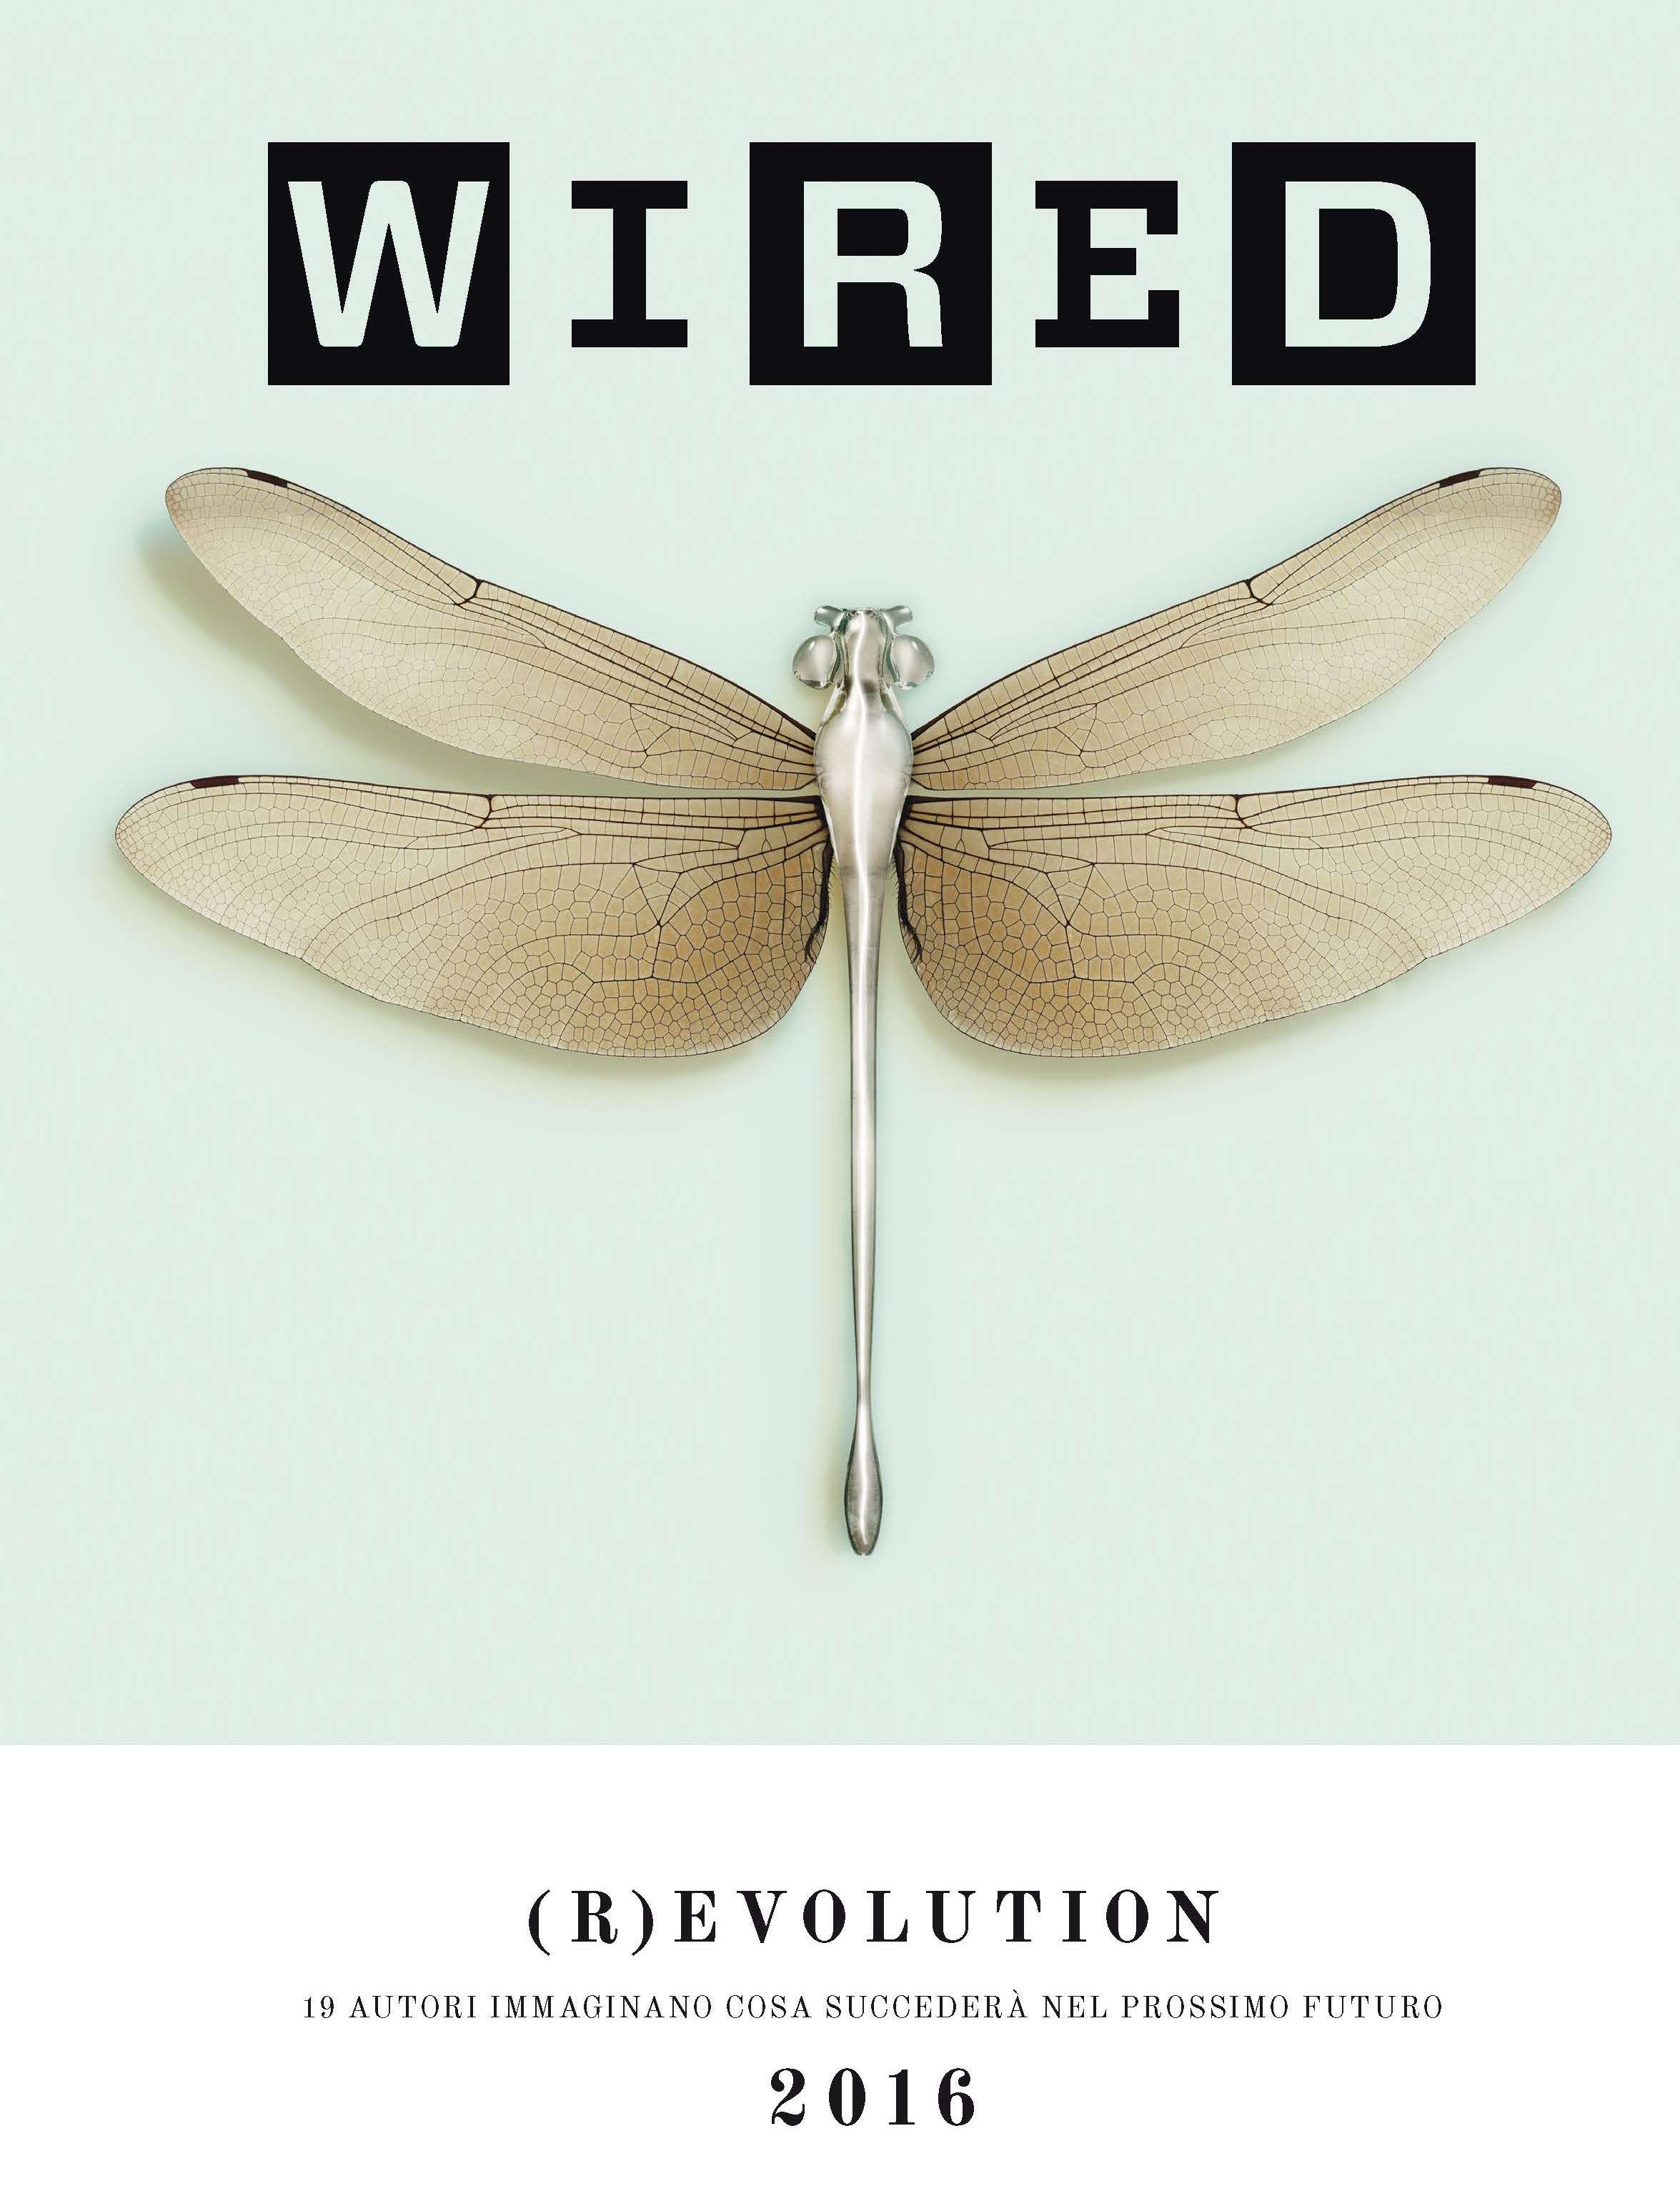 Wired cover photo